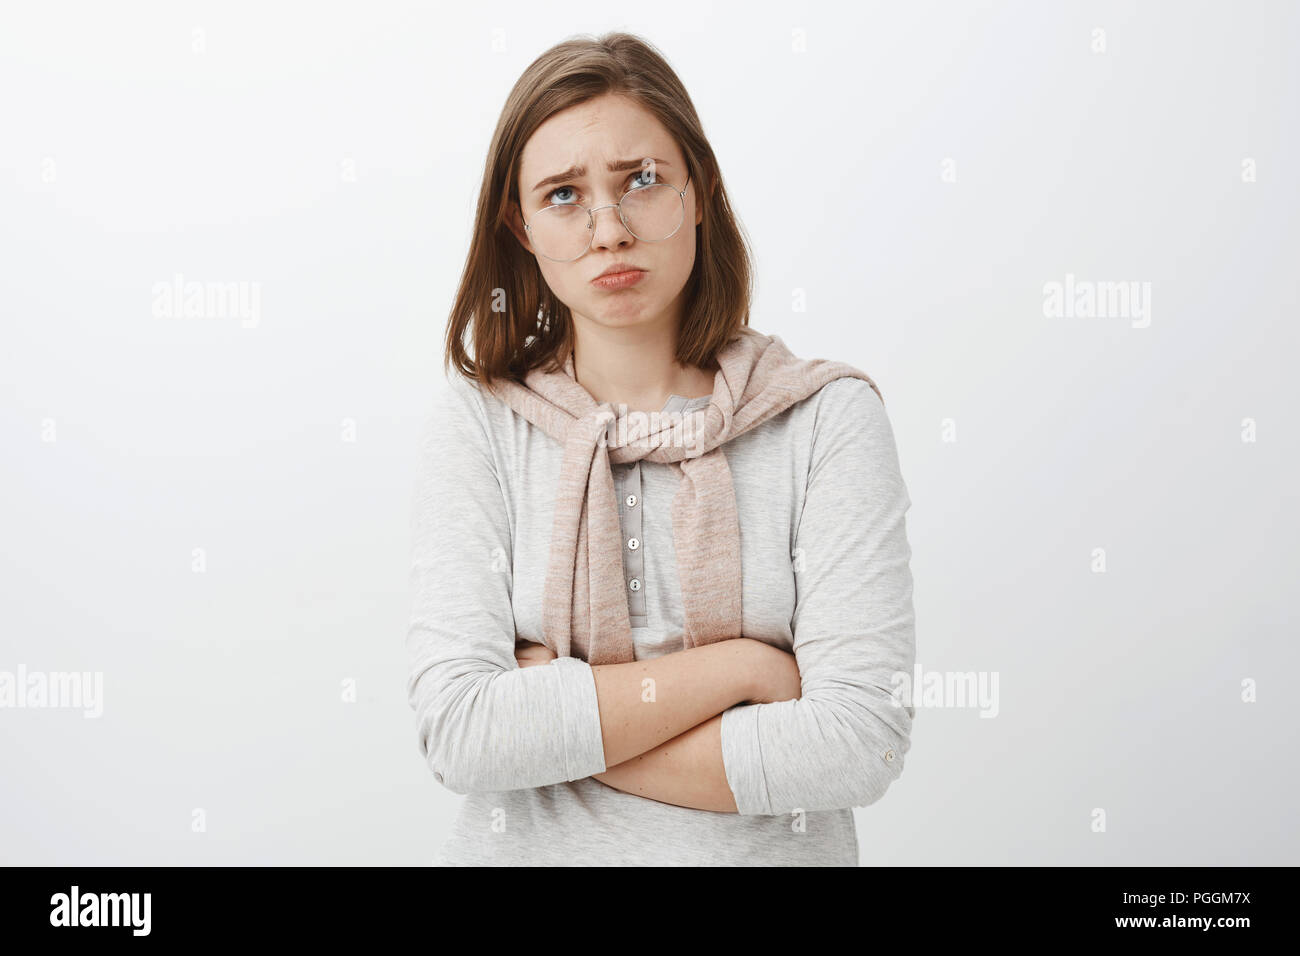 Sad gloomy offended silly girl in glasses and cute outfit folding lips, pouting frowning and looking up while complaining being offended whining over cruel and unfair life over gray background - Stock Image